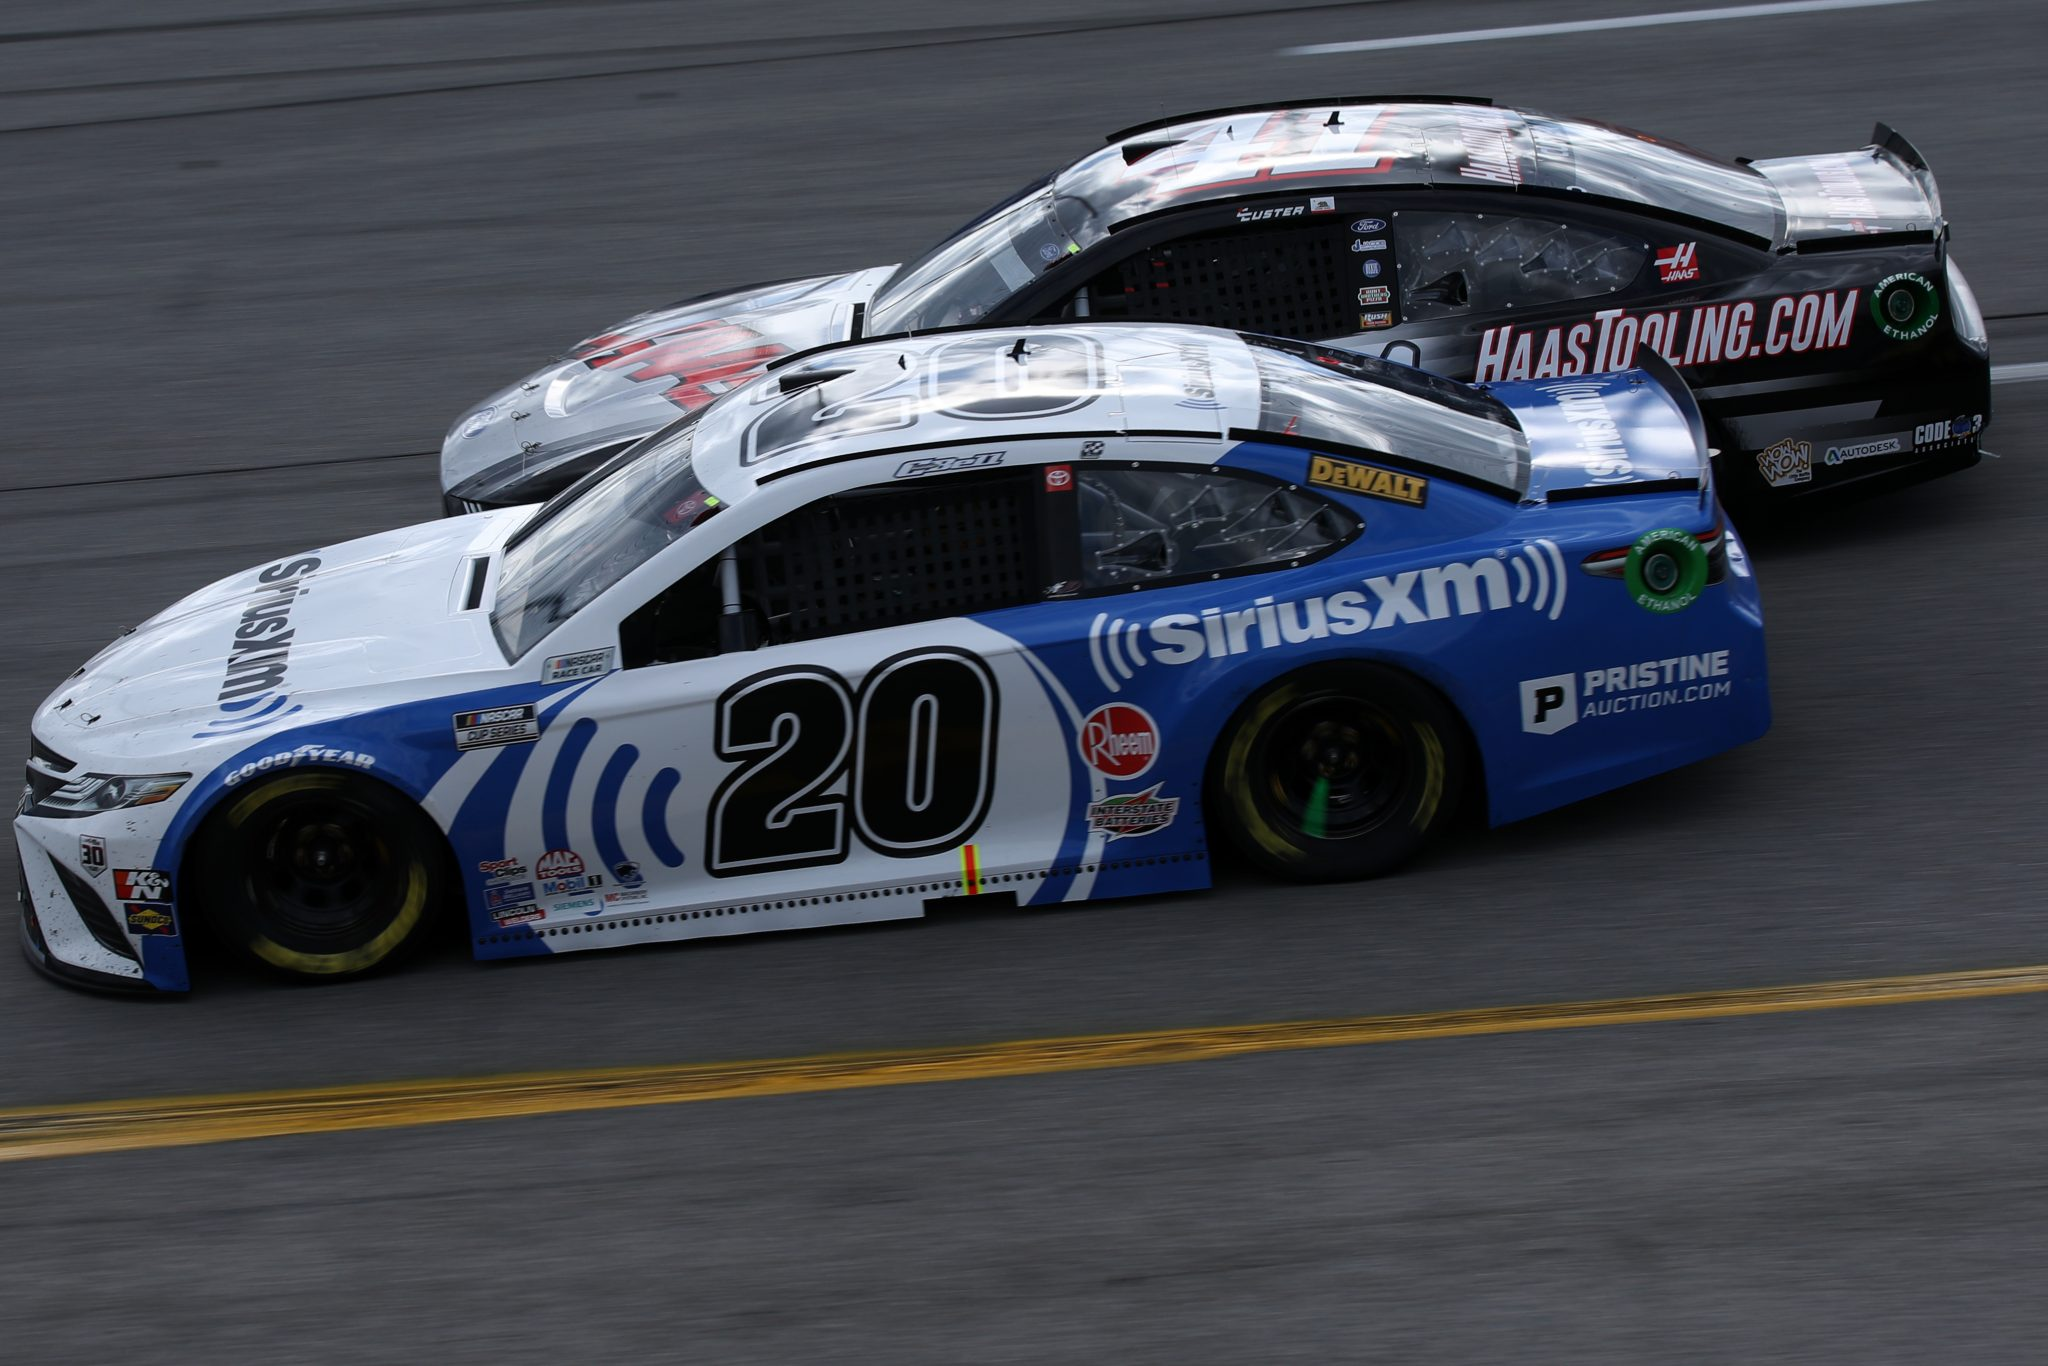 RICHMOND, VIRGINIA - APRIL 18: Christopher Bell, driver of the #20 Sirius XM Toyota, and Cole Custer, driver of the #41 HaasTooling.com Ford, race during the NASCAR Cup Series Toyota Owners 400 at Richmond Raceway on April 18, 2021 in Richmond, Virginia. (Photo by Sean Gardner/Getty Images) | Getty Images